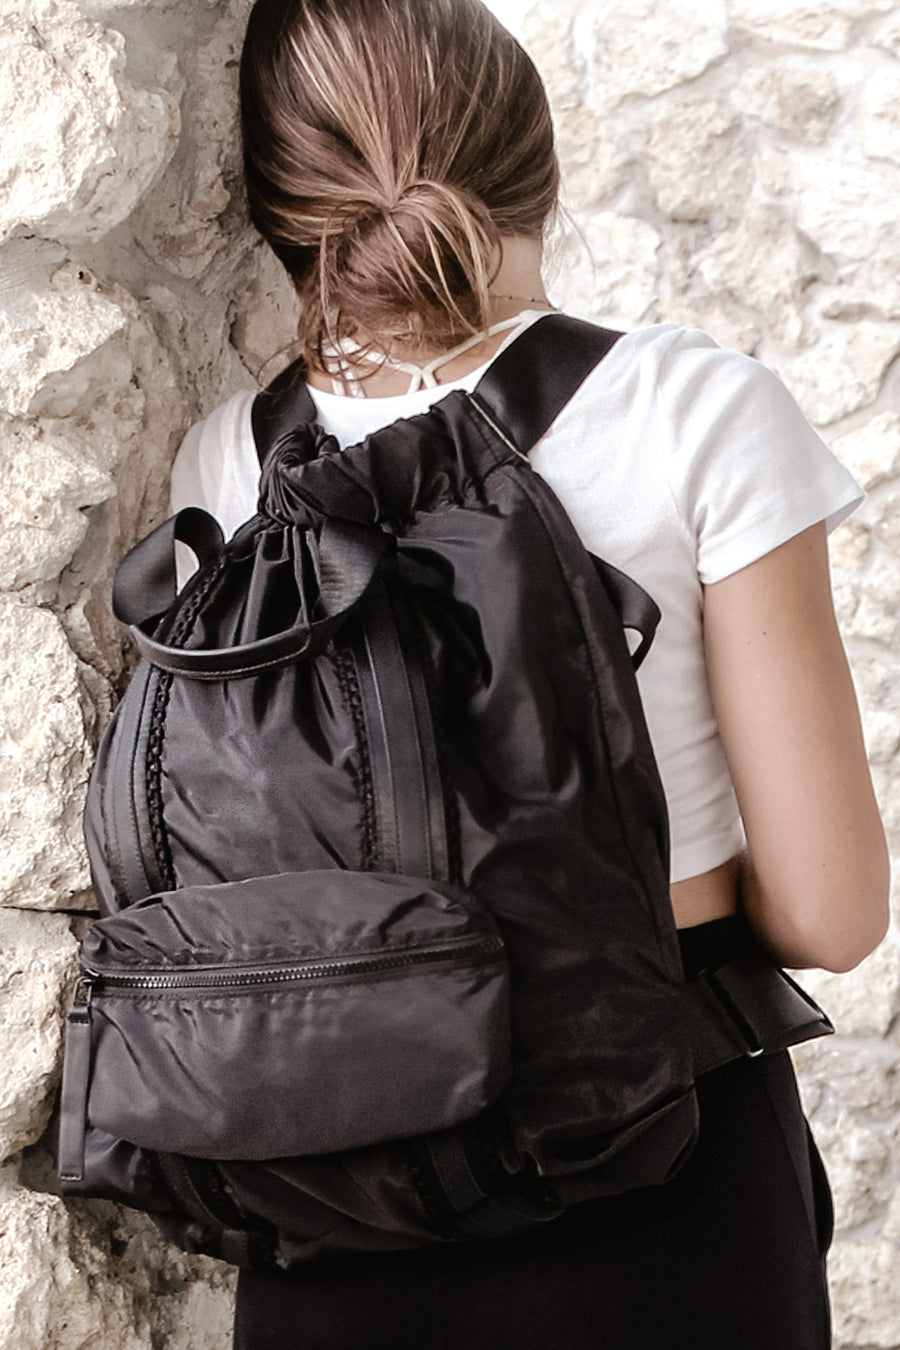 Black nylon convertible backpack tote with leather details shown on model.